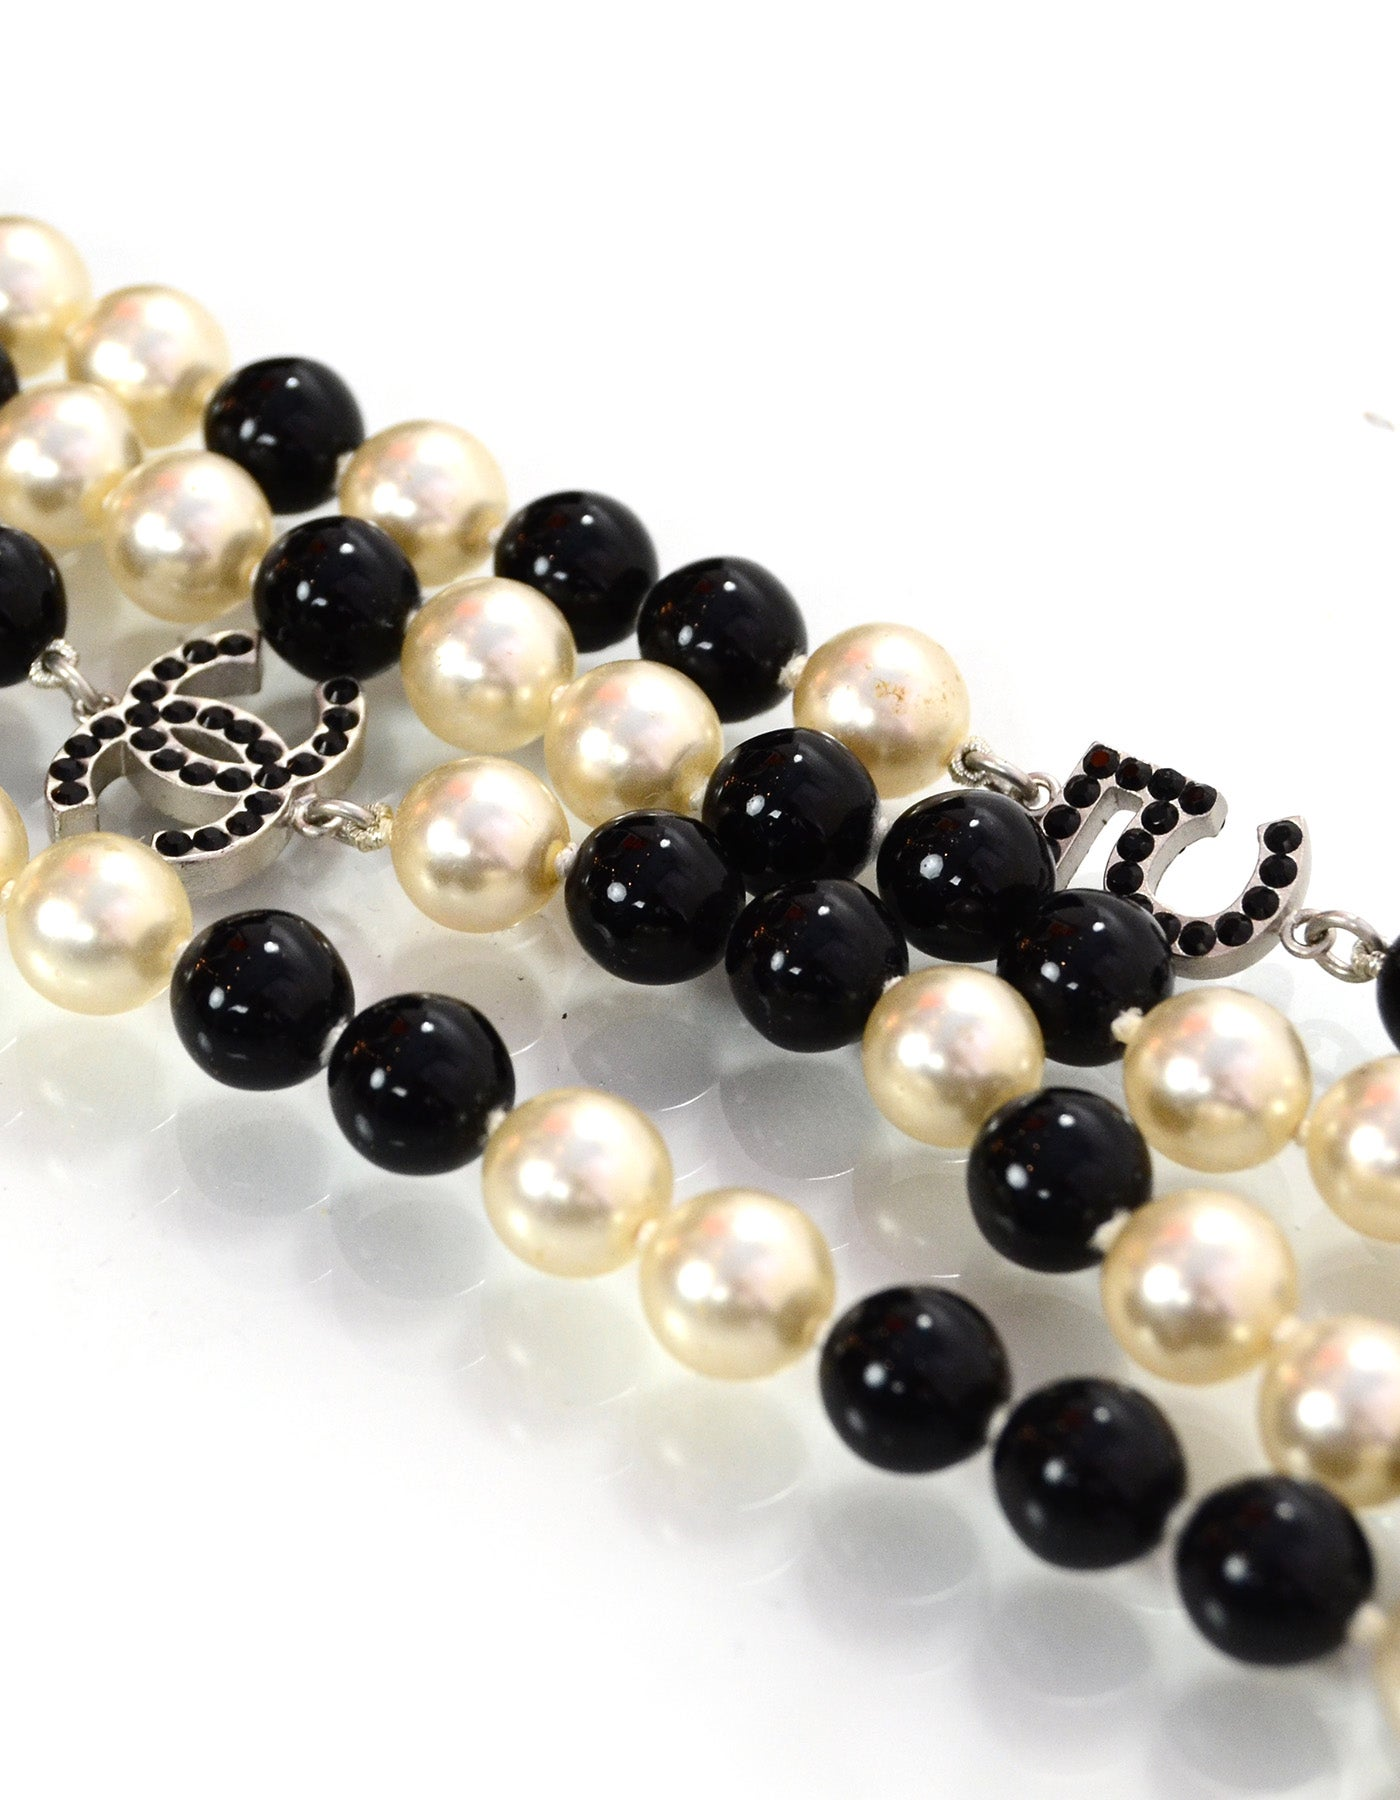 5e3ad0a07b562 Chanel Pearl & Beaded Long Black Crystal CC/Clover/ No 5 Charm Necklace